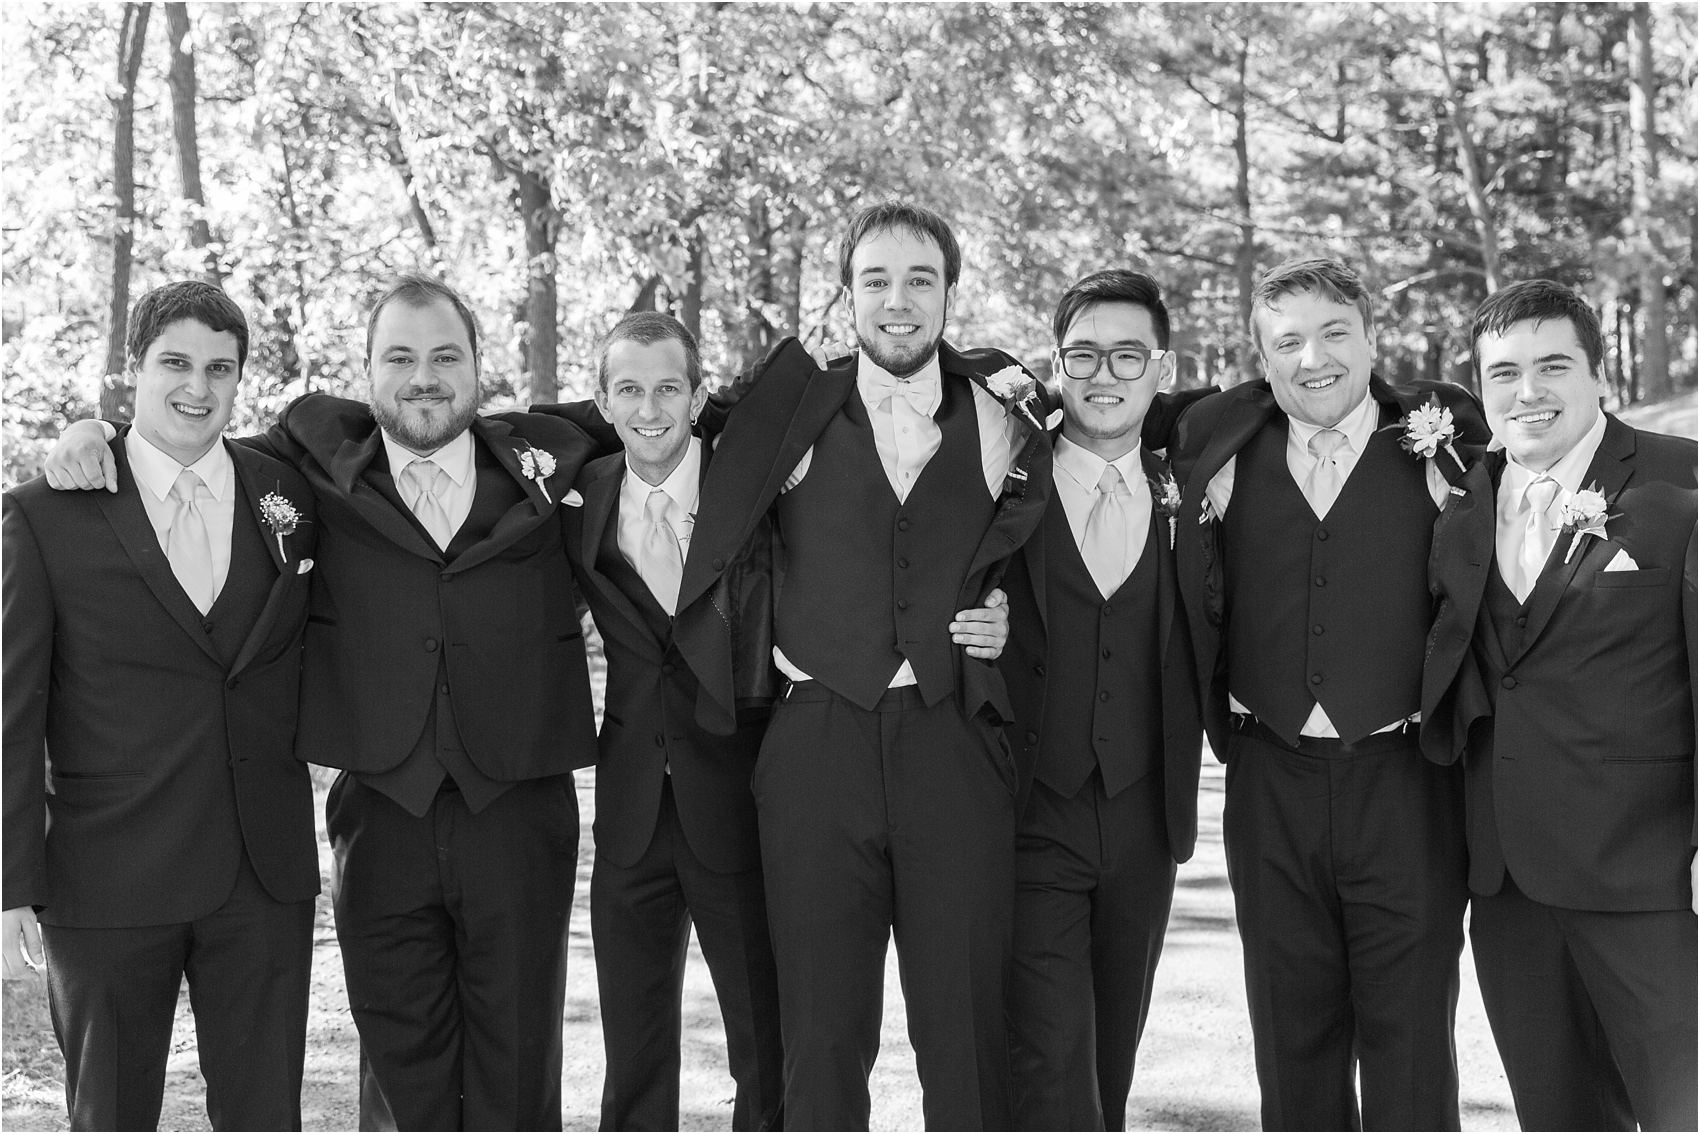 lord-of-the-rings-inspired-wedding-photos-at-crystal-gardens-in-howell-mi-by-courtney-carolyn-photography_0063.jpg